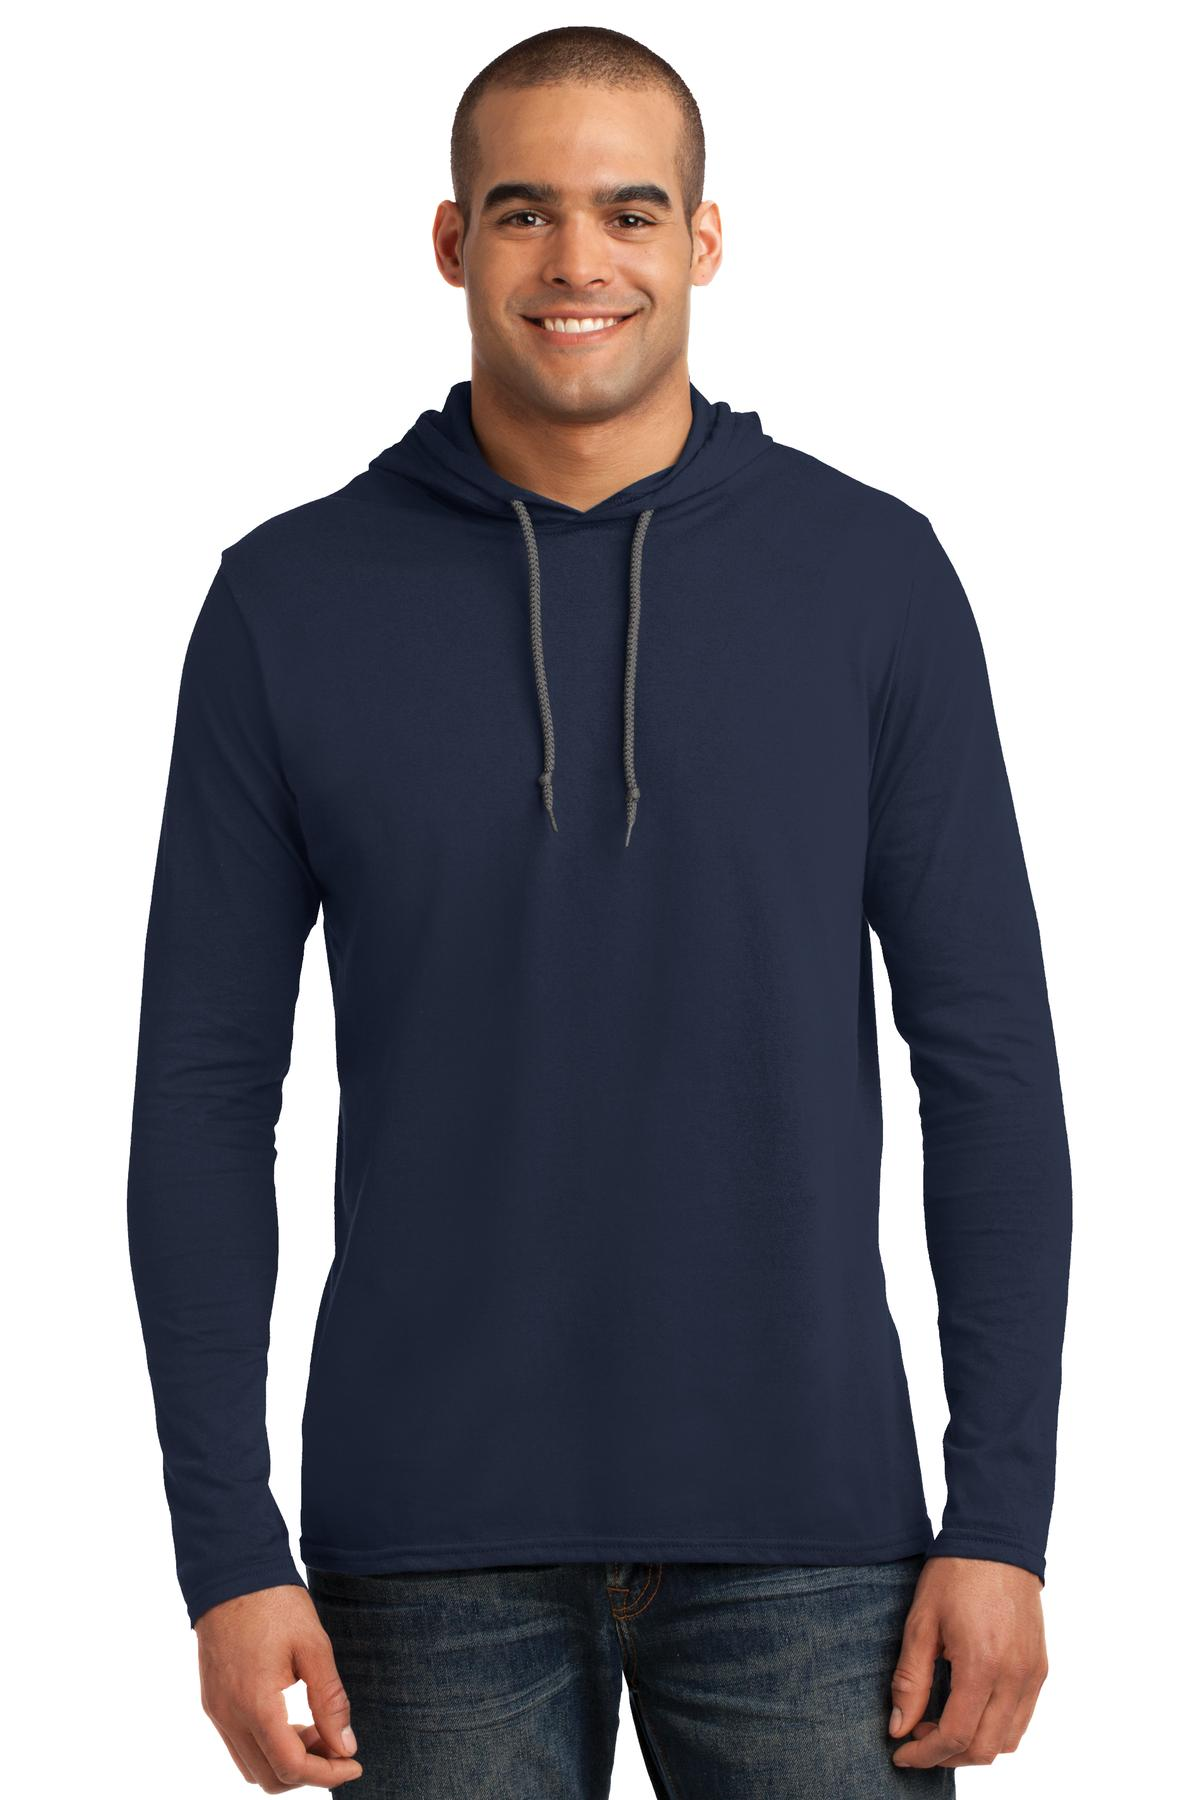 Anvil ®  100% Combed Ring Spun Cotton Long Sleeve Hooded T-Shirt. 987 - Navy/ Dark Grey